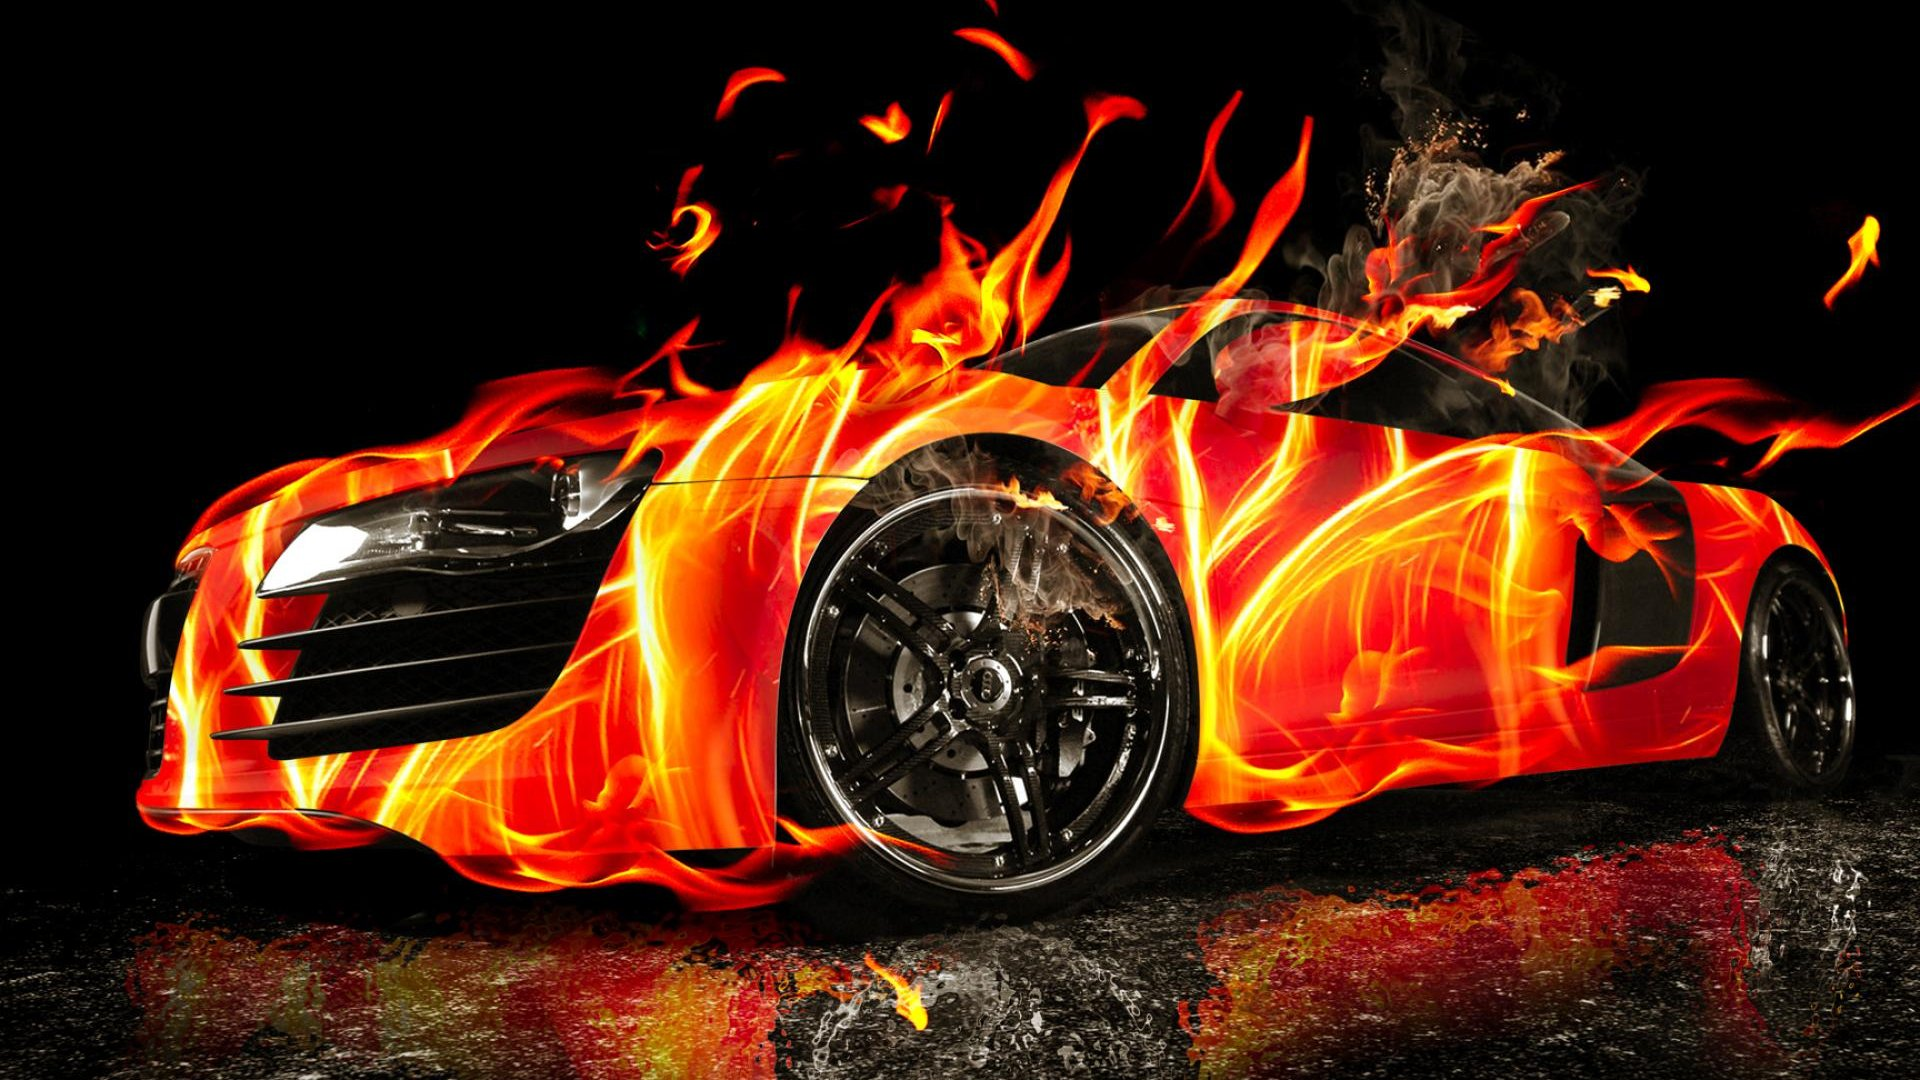 3d Car Wallpaper 3d Car On Fire Hd Wallpaper Hd Latest Wallpapers